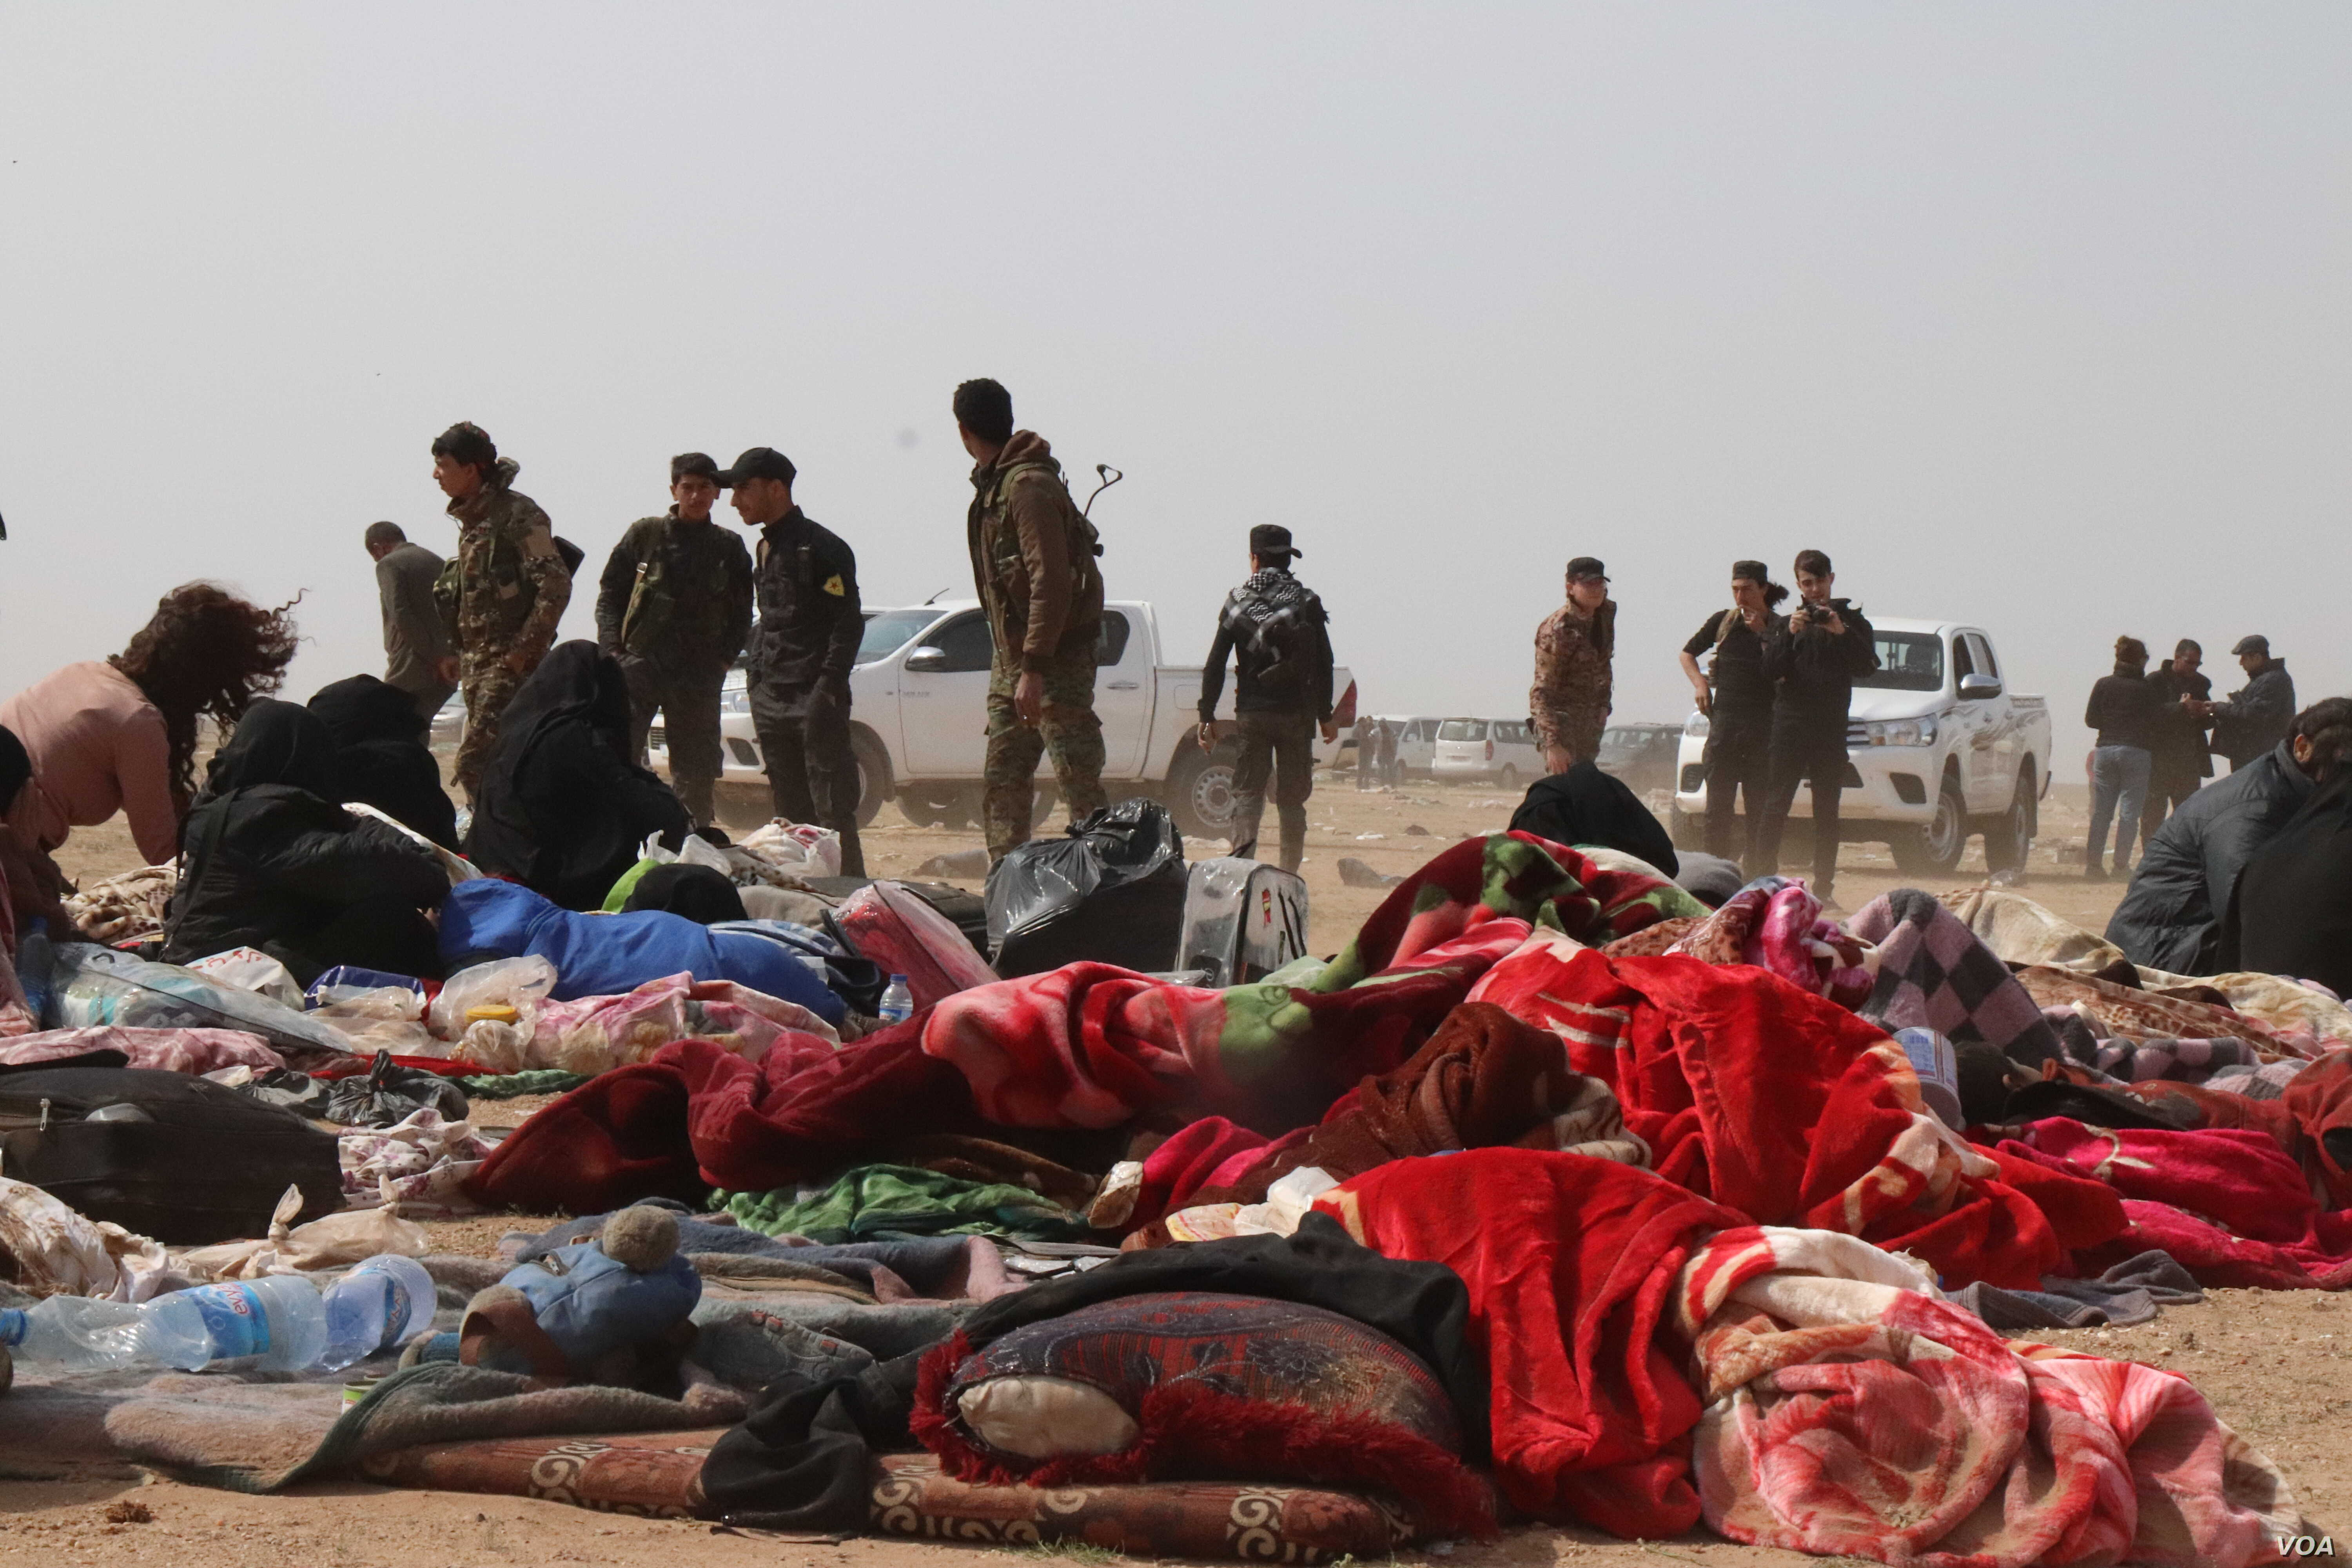 Internationally backed Syrian soldiers escort women from the war zones to refugee camps, stopping at transit centers like this one to be checked for weapons. Men are investigated more thoroughly near Baghuz in Deir el-Zour, Syria, Feb. 26, 2019. (H.M...